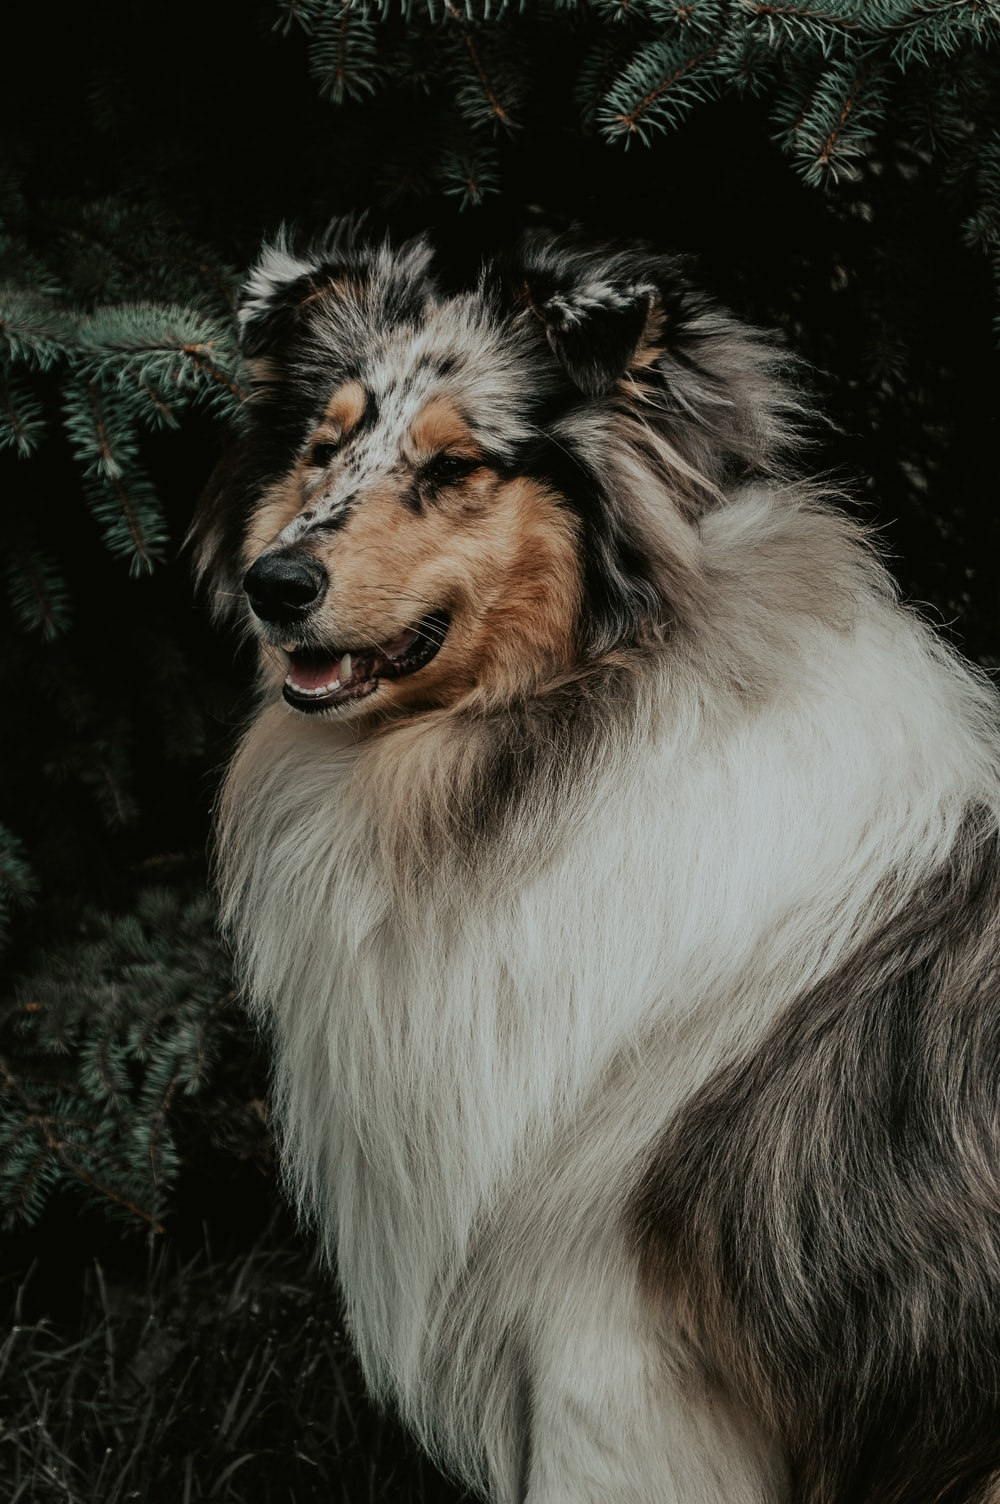 long-coated white, brown, and black dog